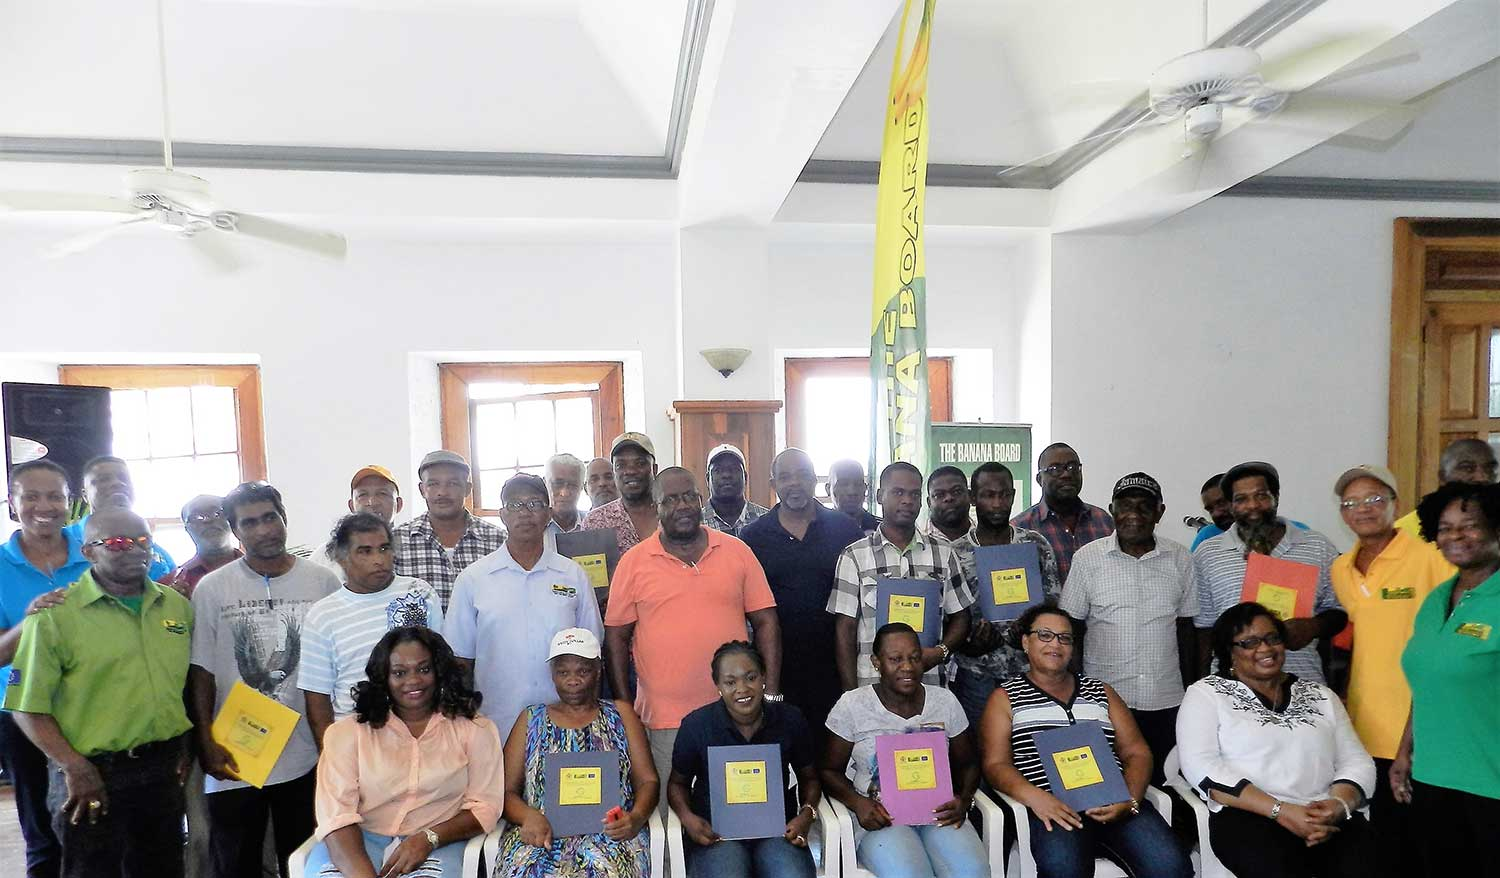 Jamaican Bananaplantain Farmers Achieve Globalgap Certification